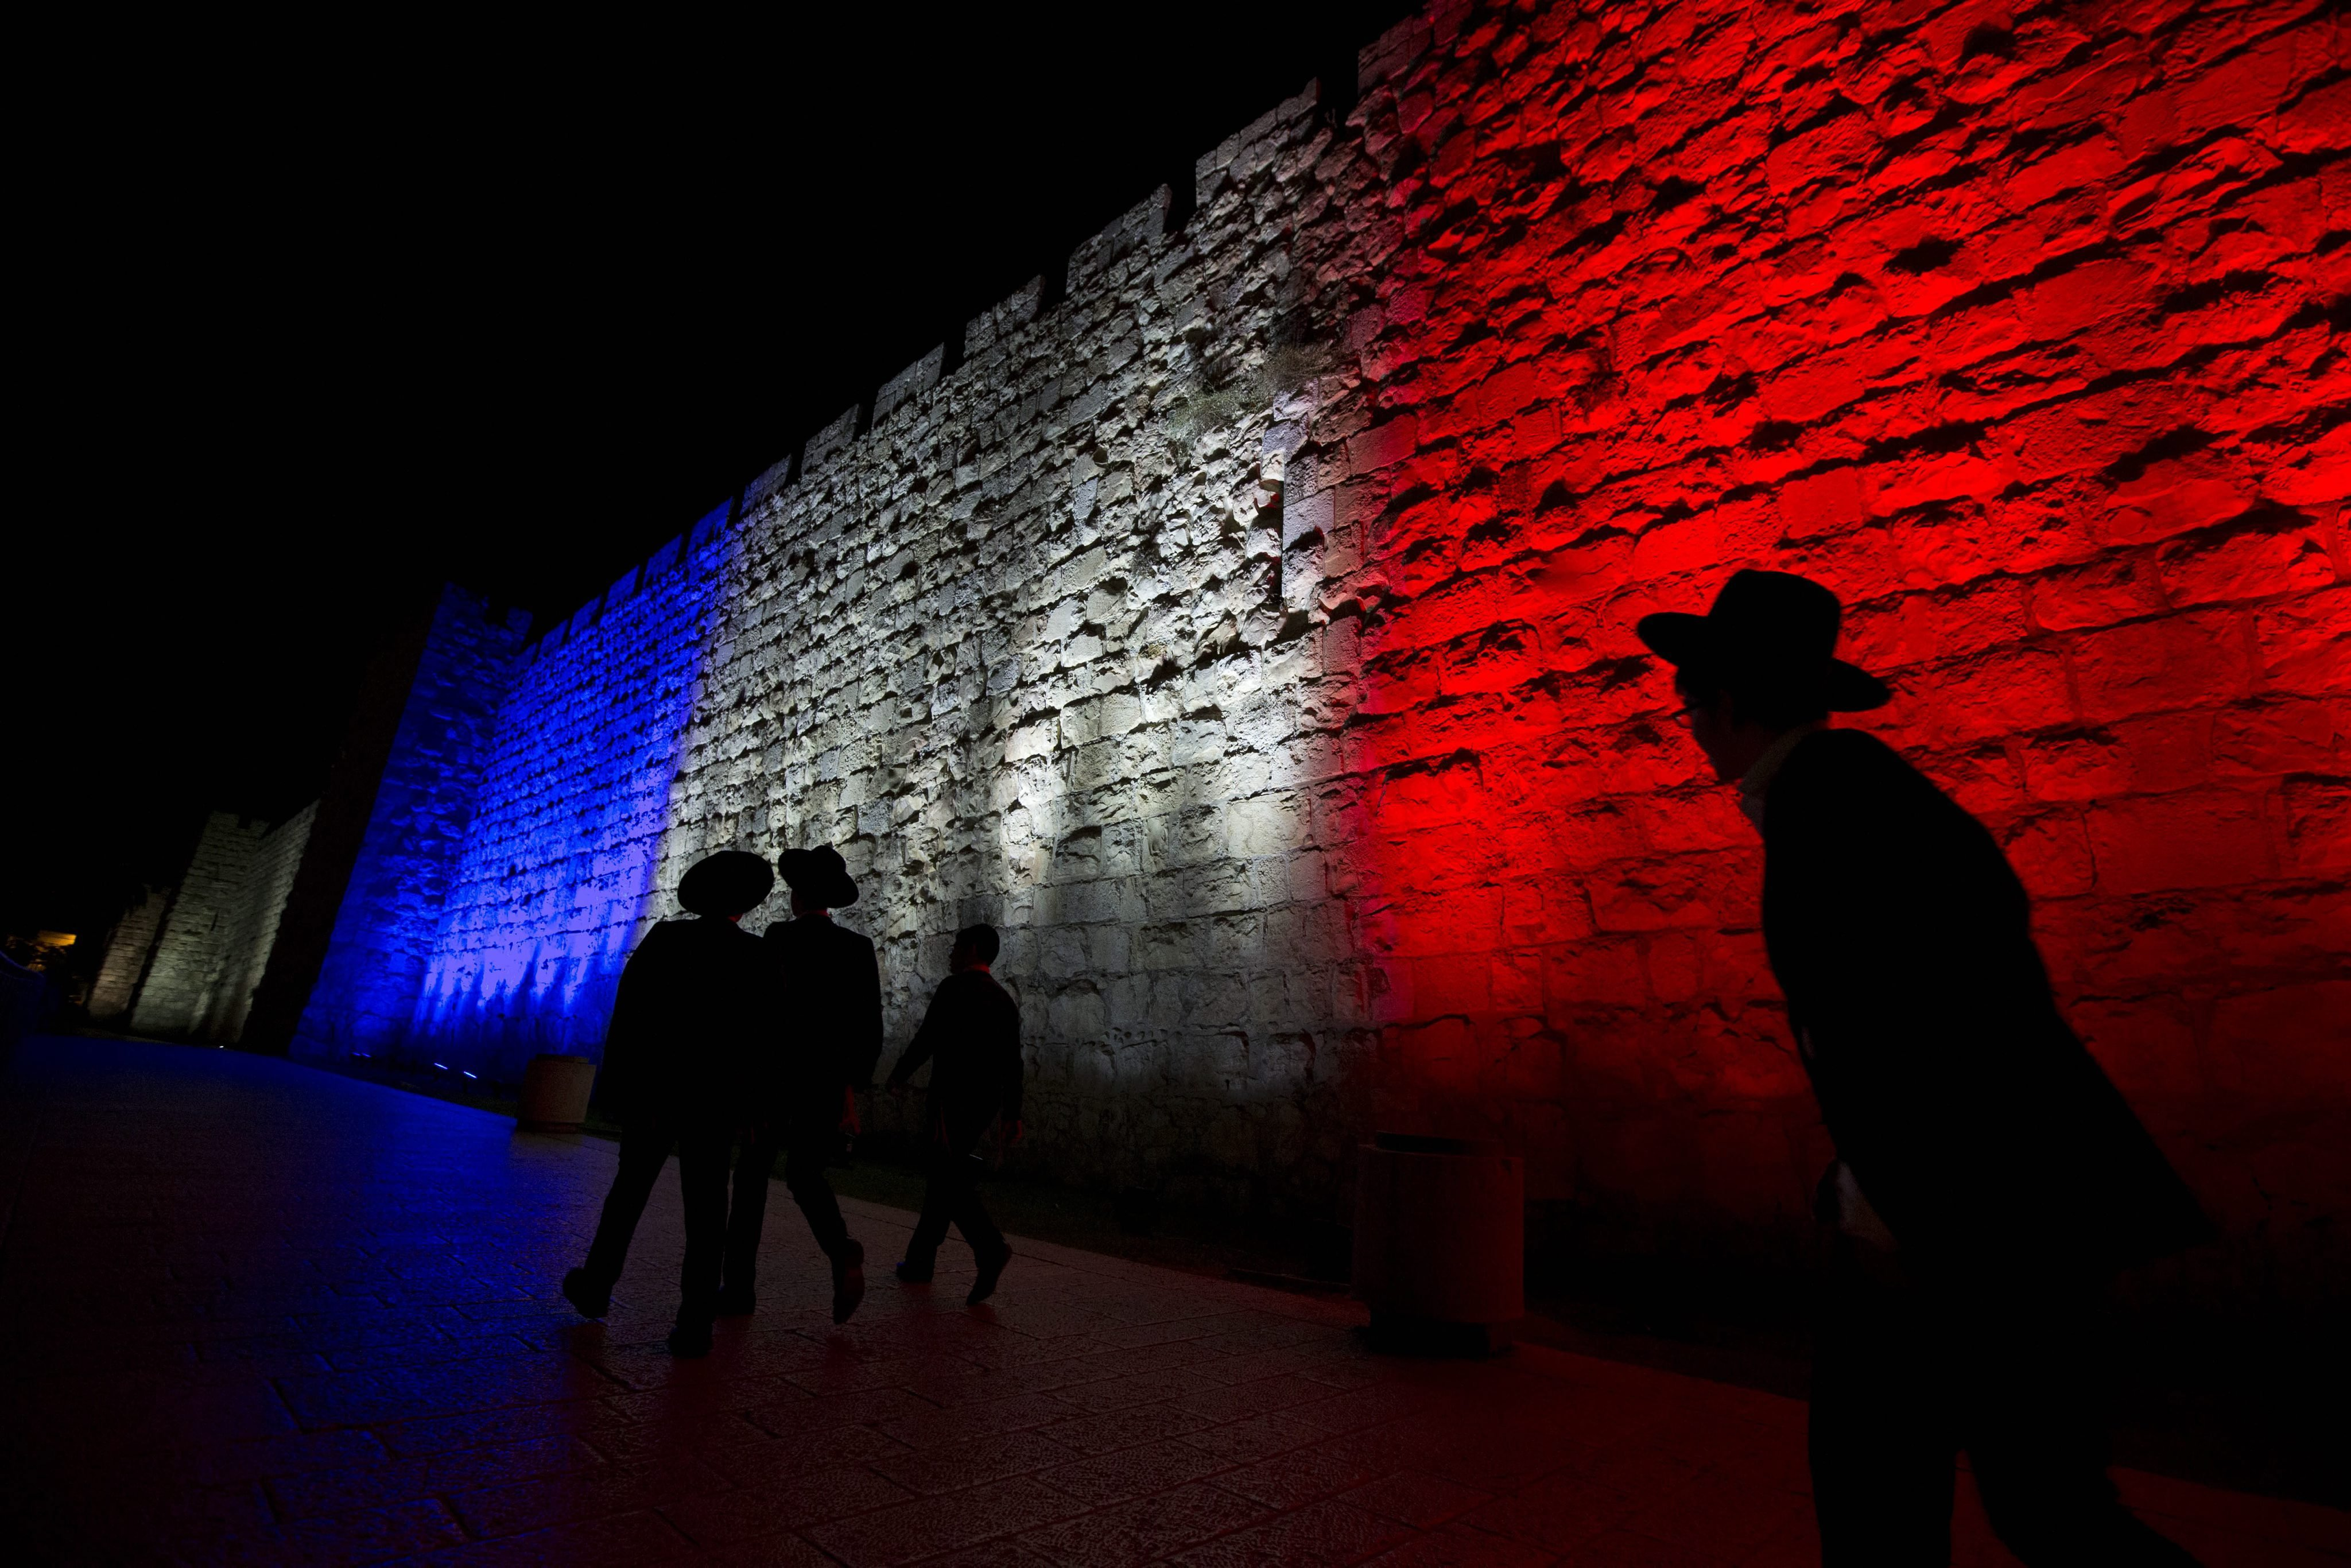 Jerusalem's Old City walls illuminated in the colors of the French national flag in solidarity for the victims of the Paris attacks, in Jerusalem on Nov. 15, 2015.